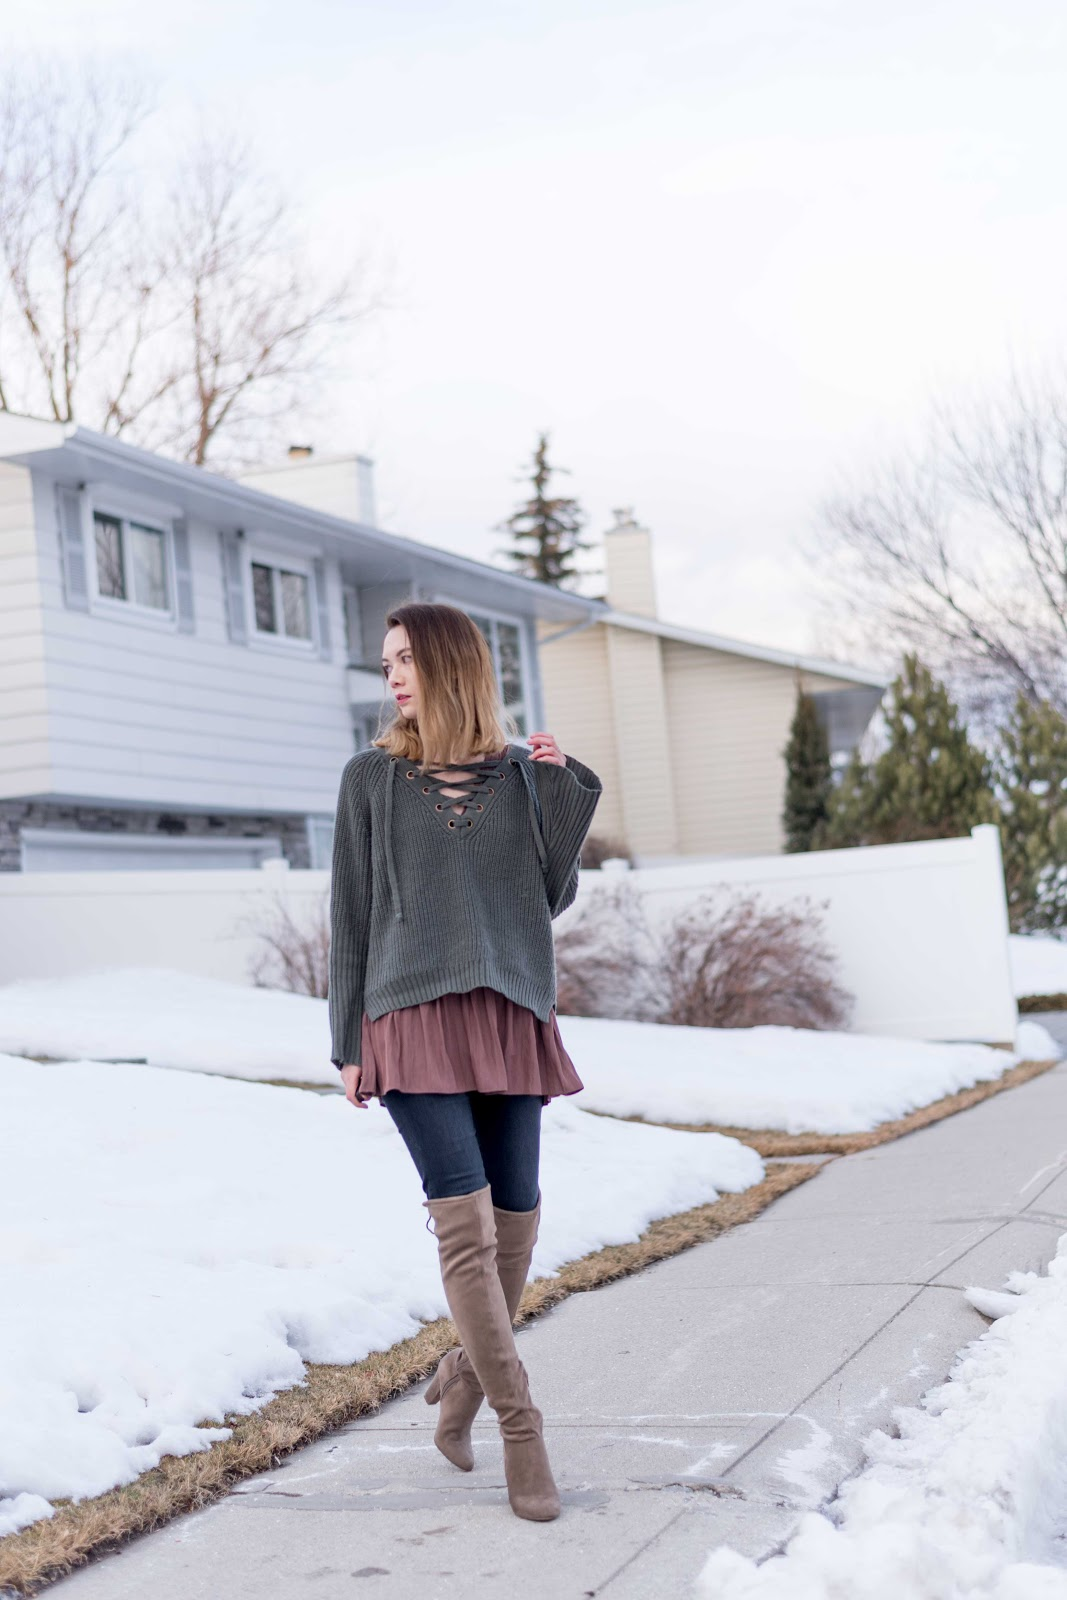 zaful review, lace up sweater, lace up top, over the knee boots, jbrand, aritzia dress, winter fashion, calgary fashion, how to layer